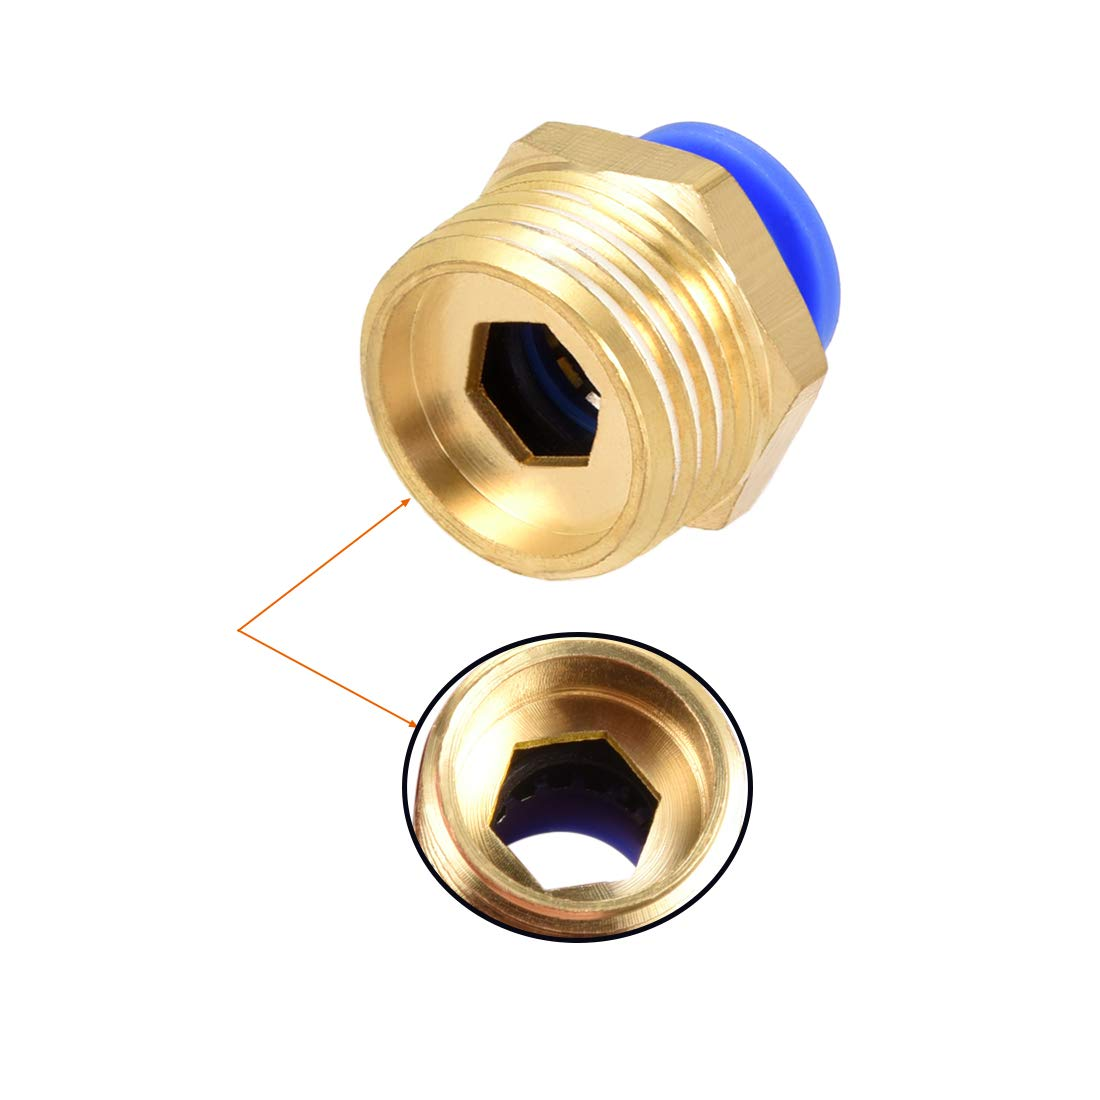 uxcell 5PCS 1//8 PT Male Thread to 4mm Tube Push in Connect Straight Quick Fittings